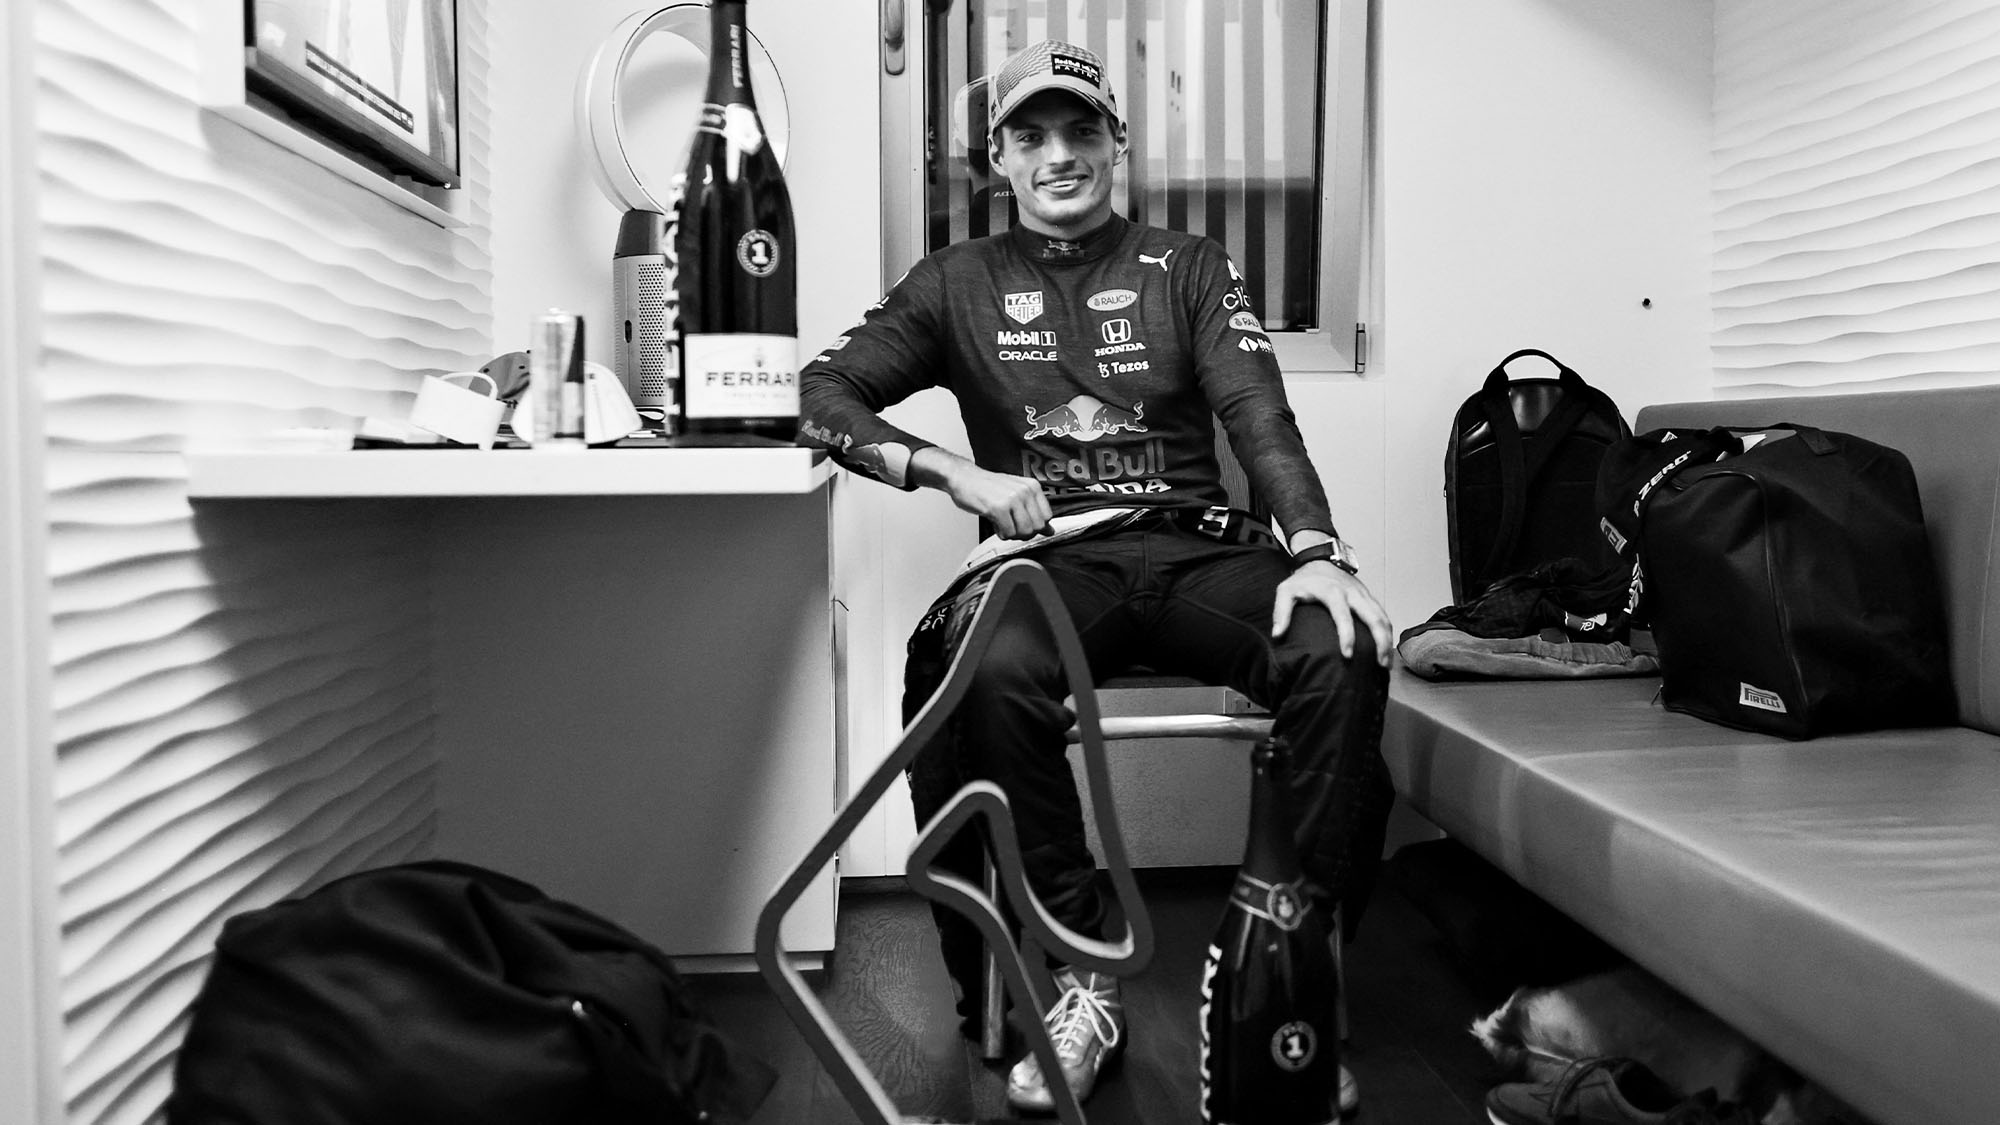 SPIELBERG, AUSTRIA - JUNE 27: (EDITORS NOTE: Image has been converted to black and white.) Race winner Max Verstappen of Netherlands and Red Bull Racing relaxes with his trophy and sparkling wine after the F1 Grand Prix of Styria at Red Bull Ring on June 27, 2021 in Spielberg, Austria. (Photo by Mark Thompson/Getty Images)